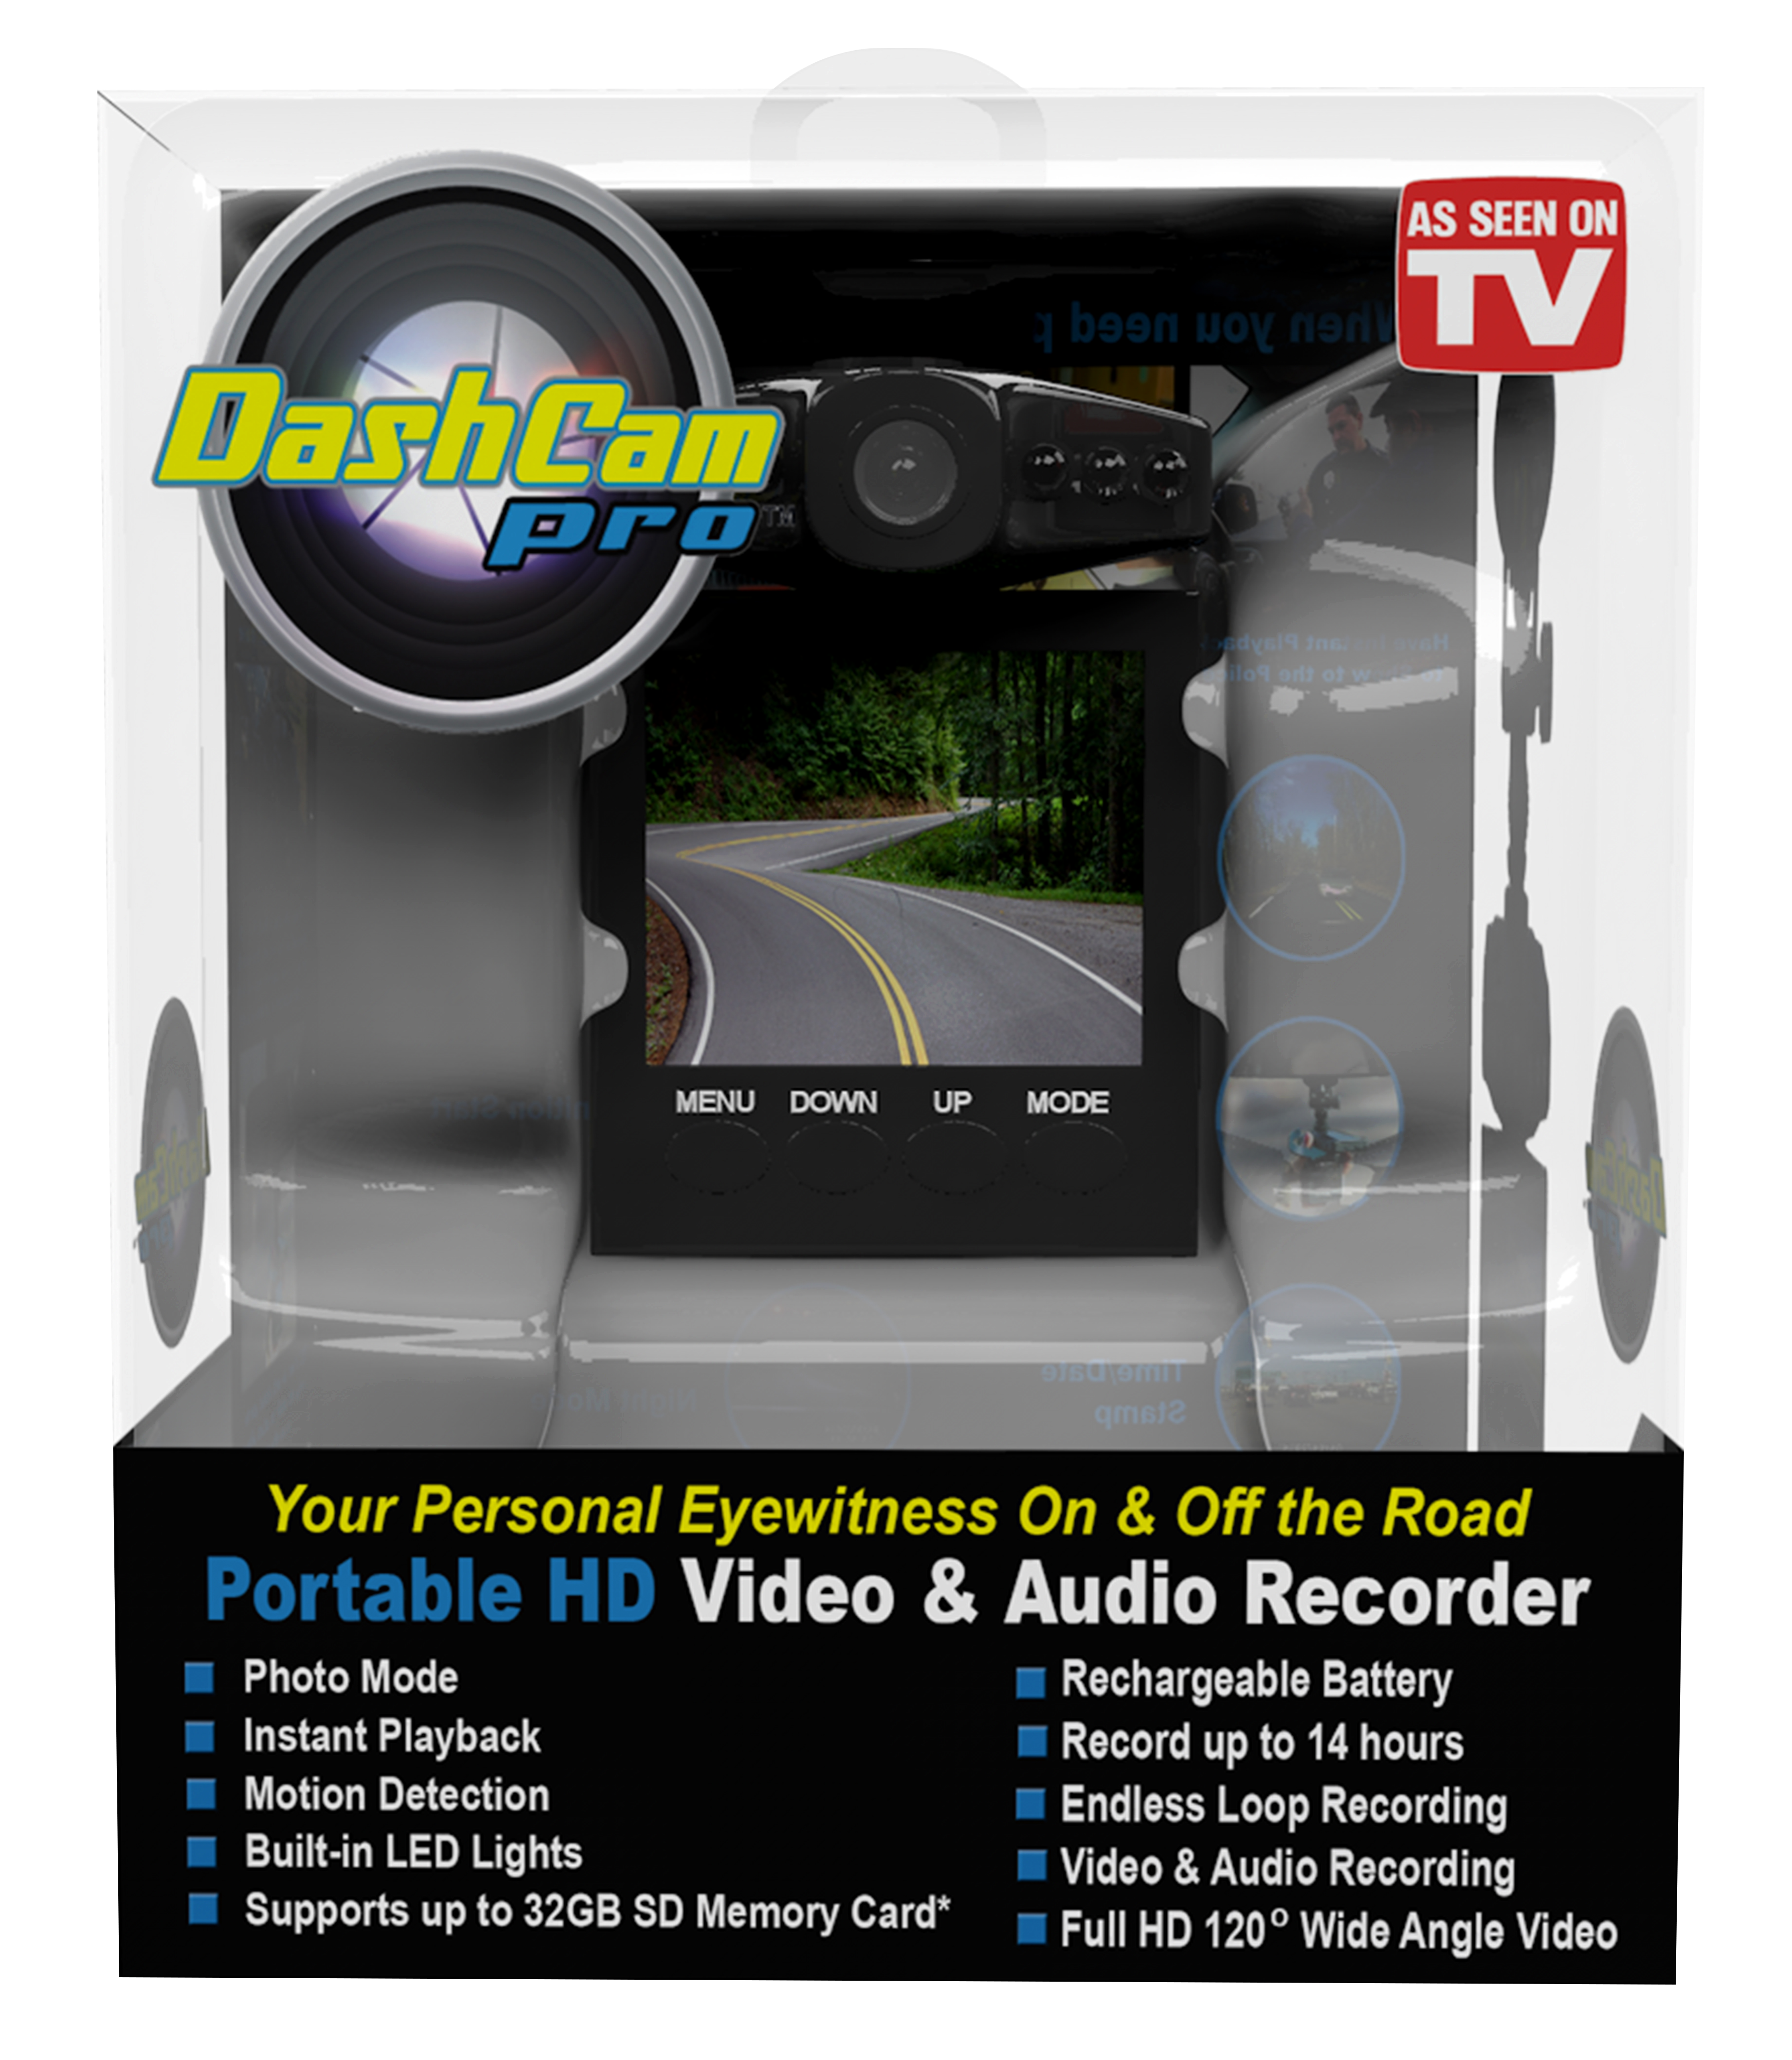 Dash Cam Pro | Security Camera For Your Car | InvenTel | As